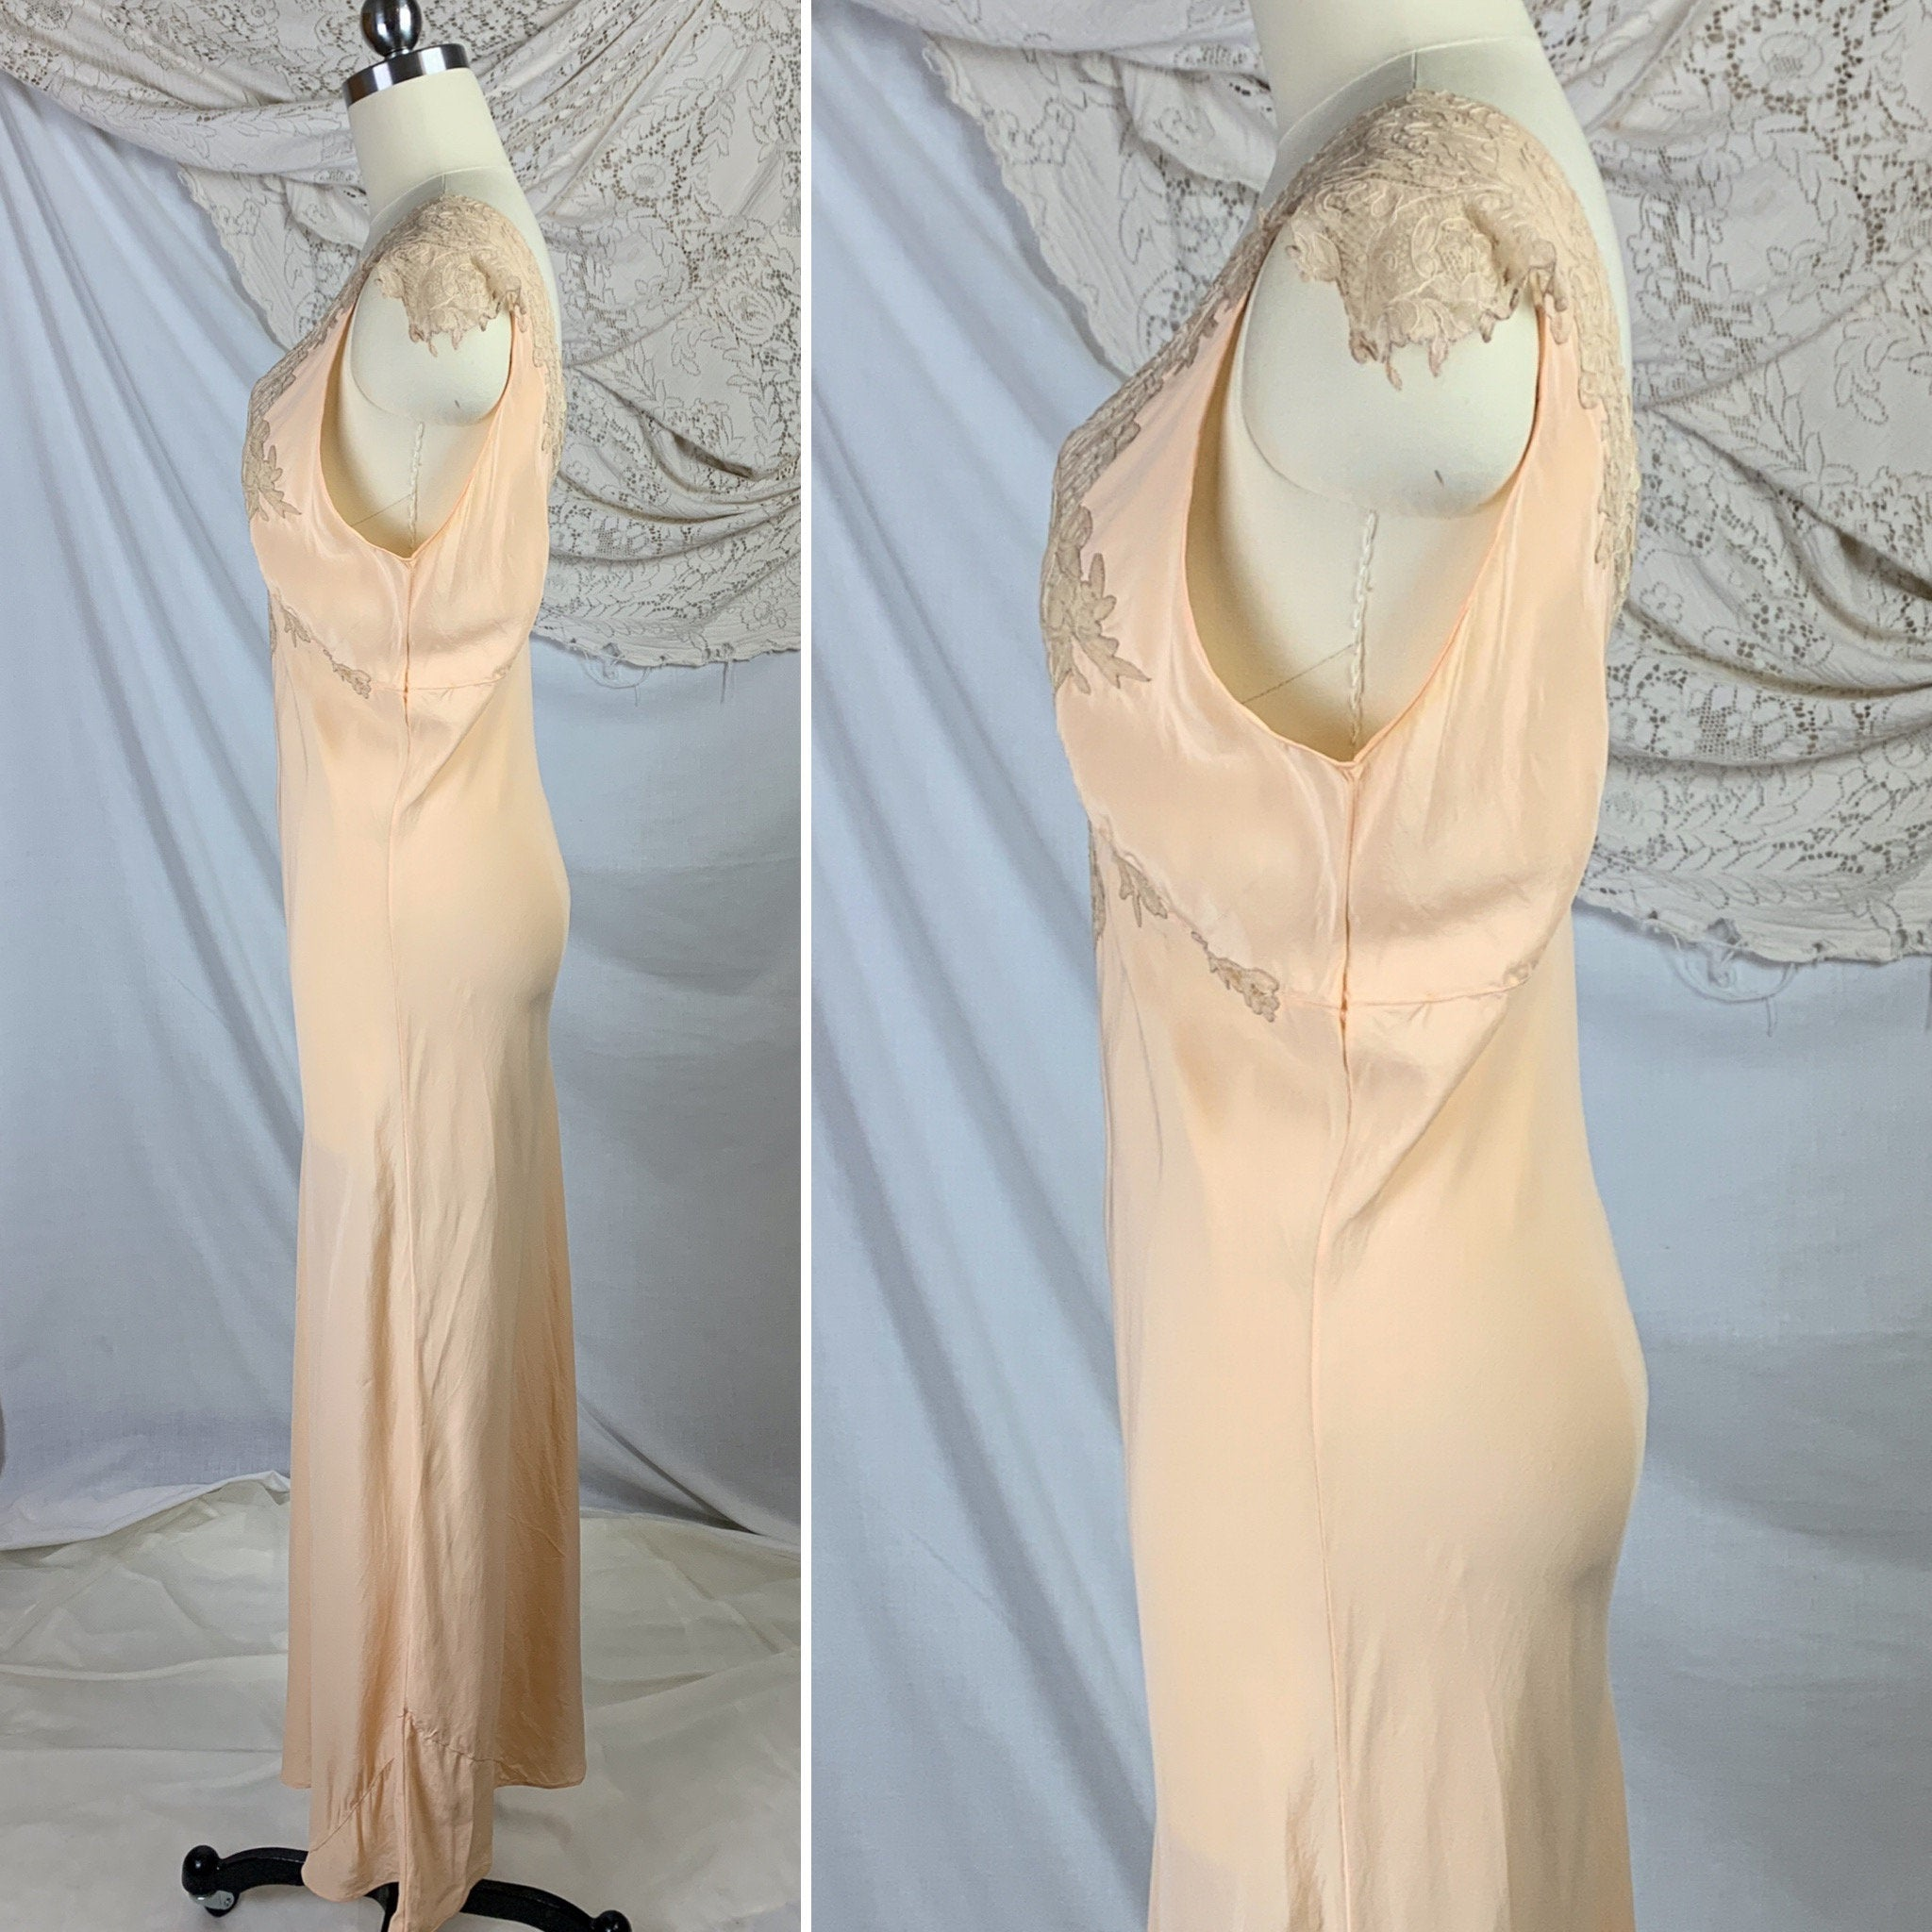 Vintage 1930's Nightgown | Rich Apricot Silk with Taupe Alençon Lace | Size SM, MED